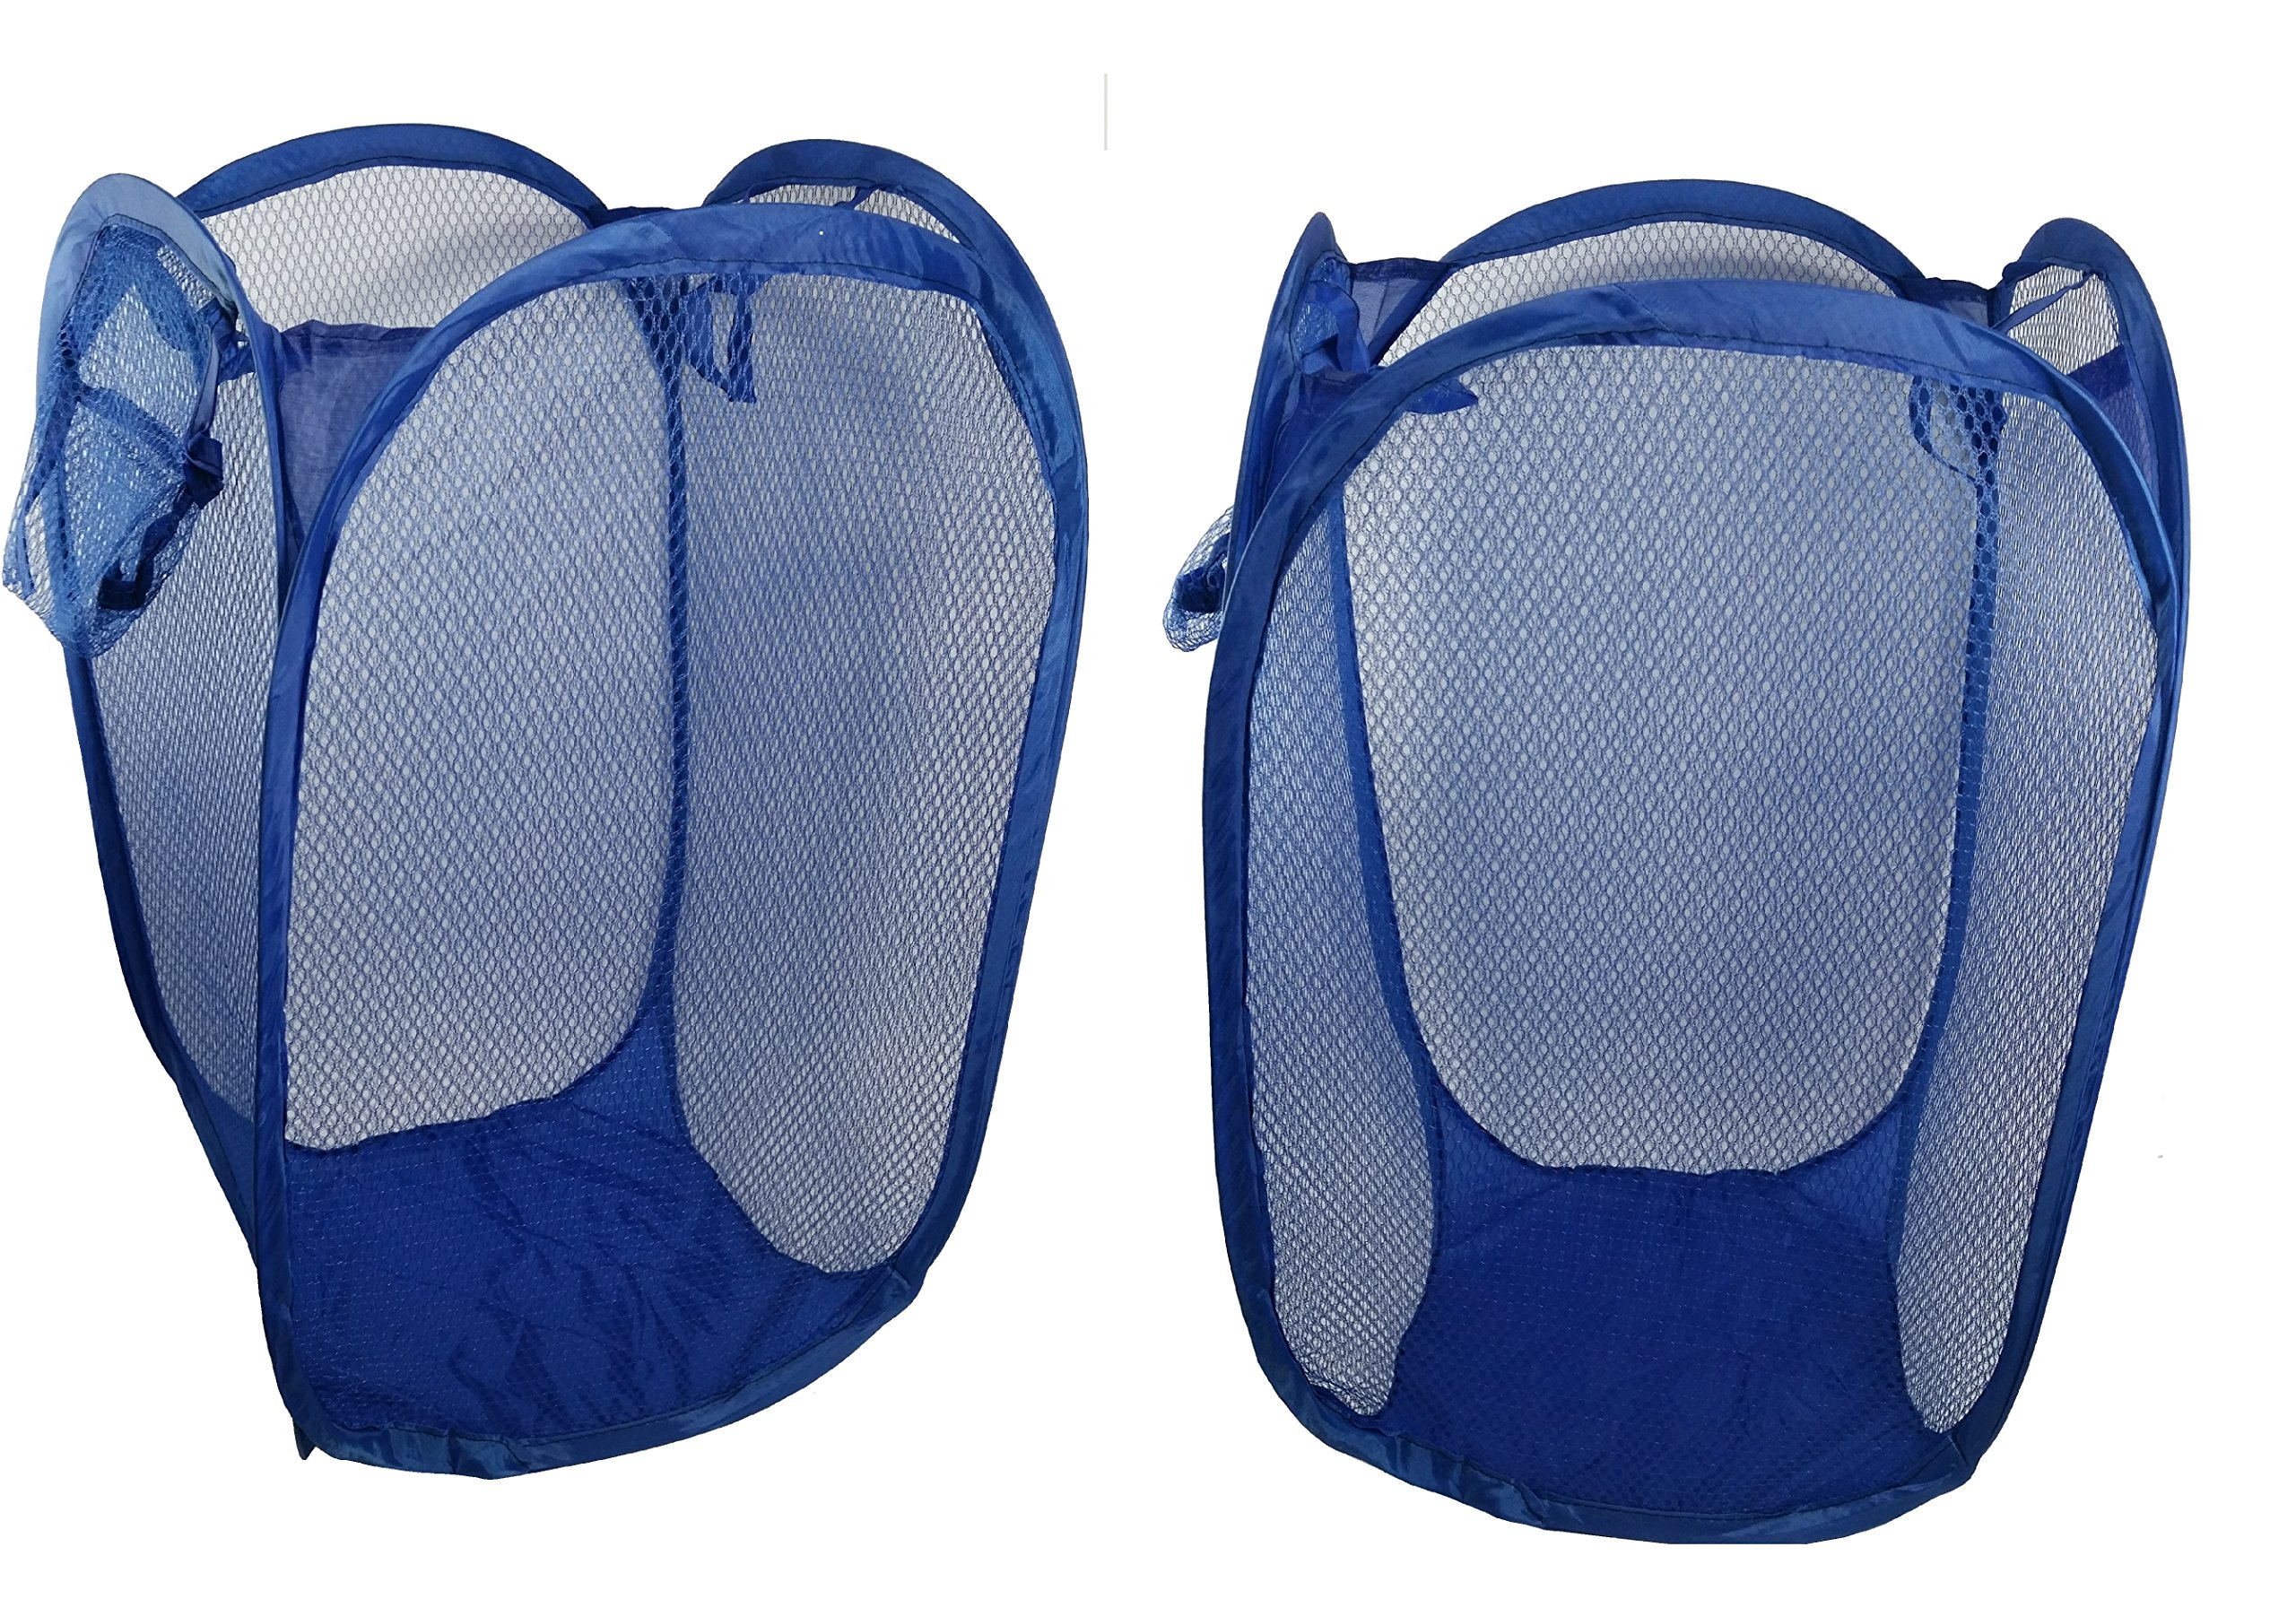 Pop Up Hamper Storage Extra Large for Toys, Laundry, Diapers Hamper Bag with Carry Handles, Pack of 2 Blue